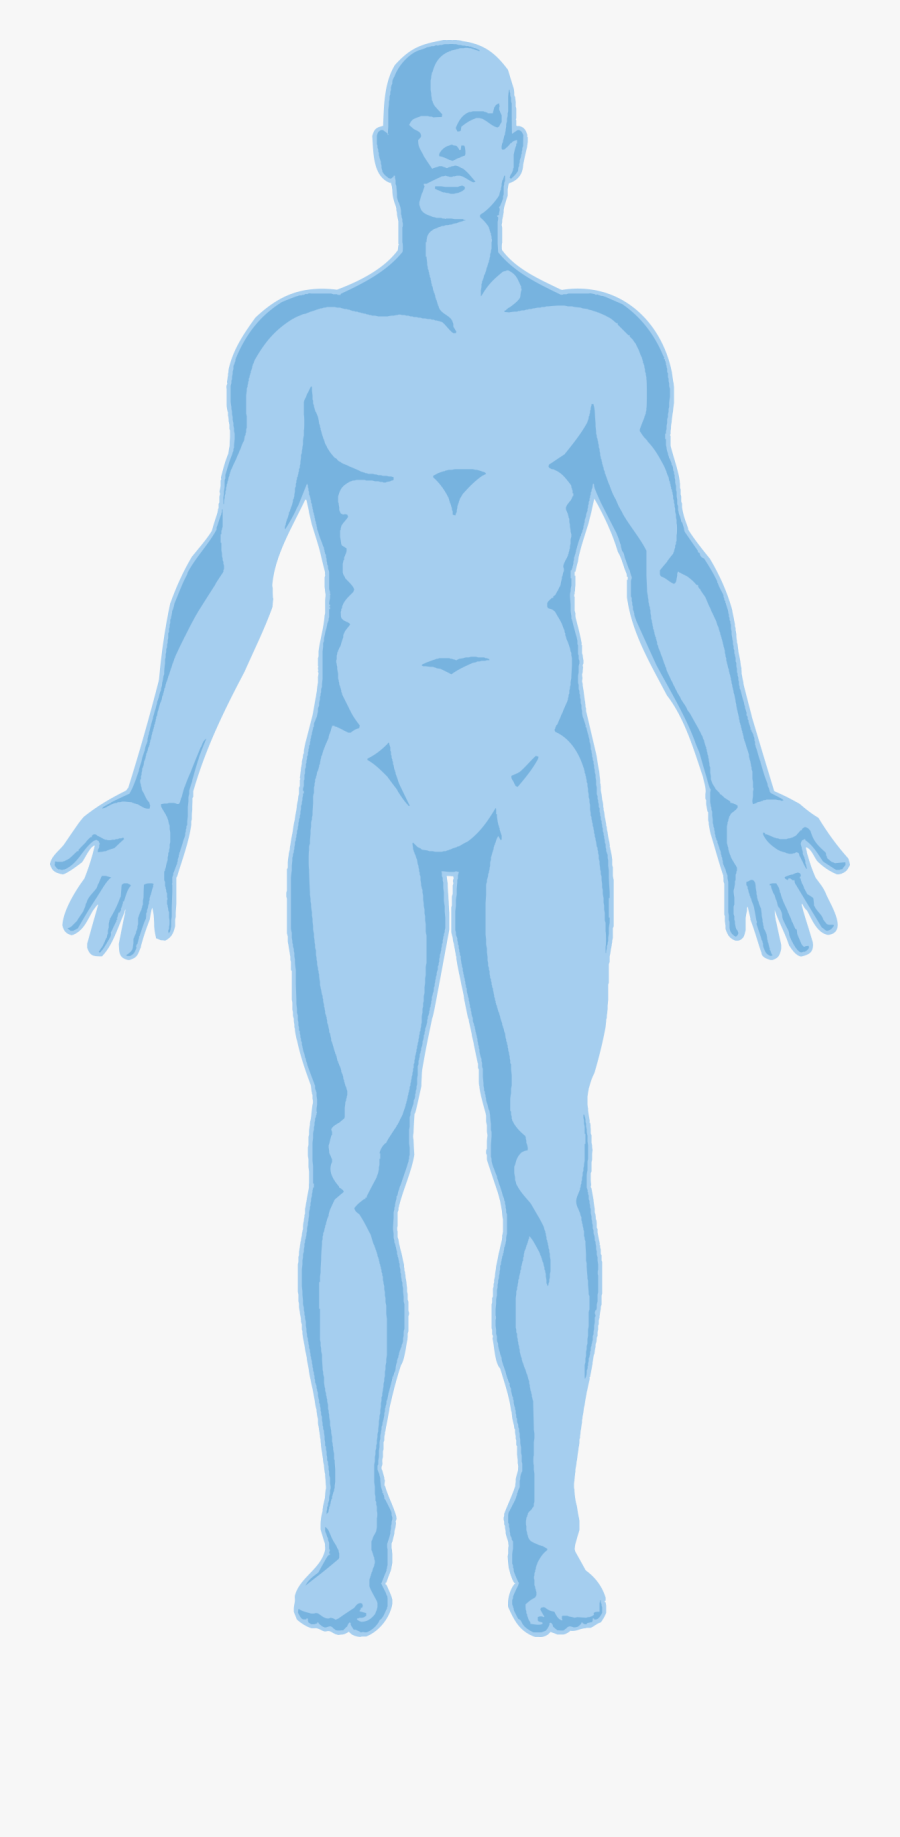 Body Outline Transparent Background - Human Body Outline Transparent Background, Transparent Clipart